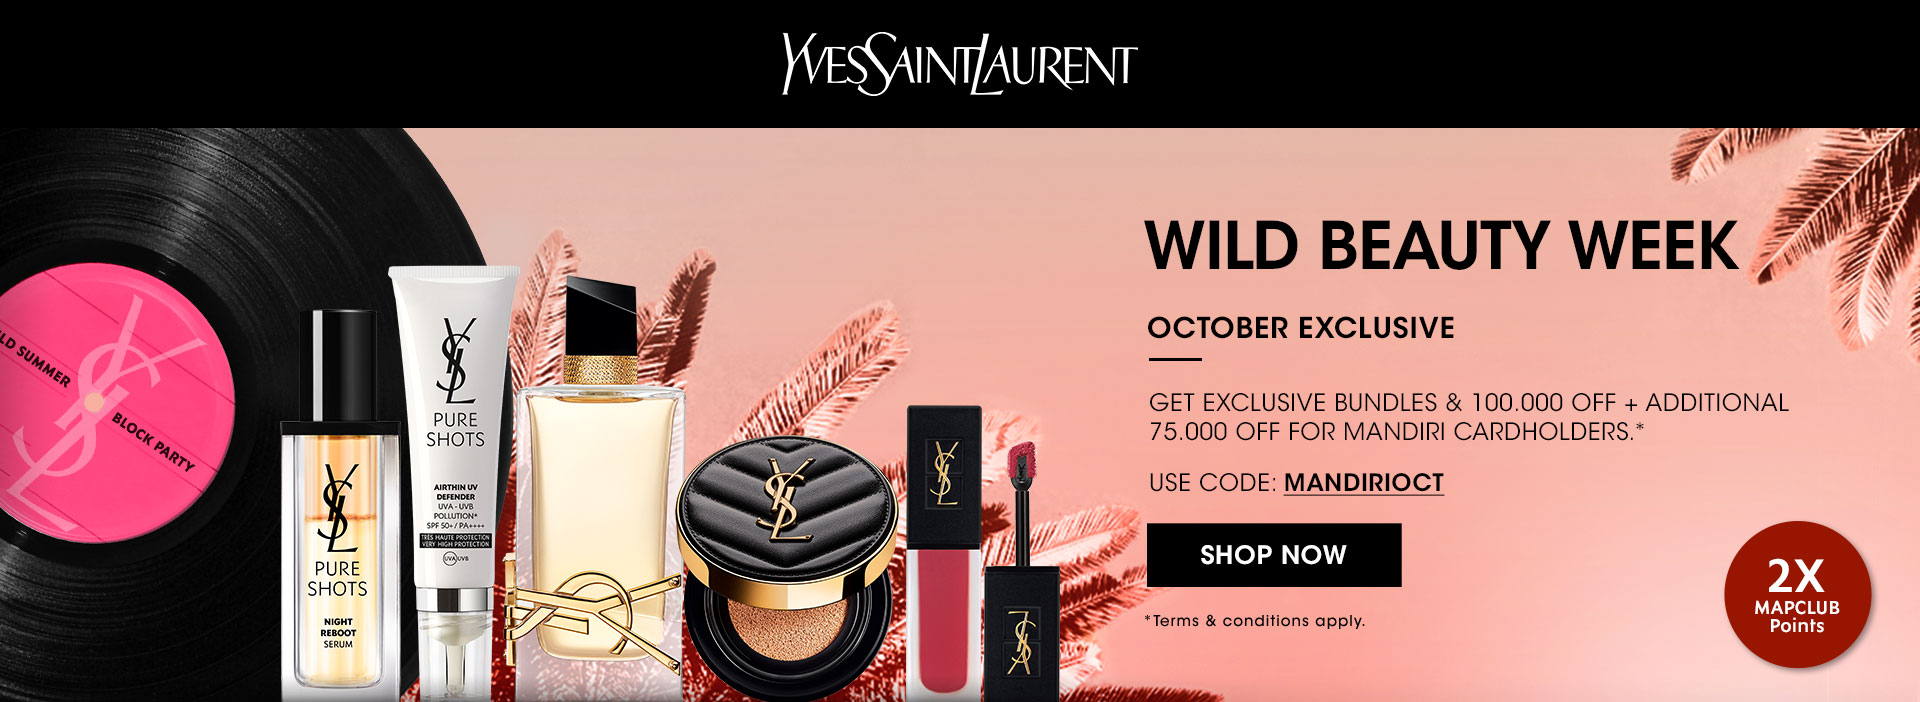 YSL SIS 1-9 Oct Slide 1_Dekstop